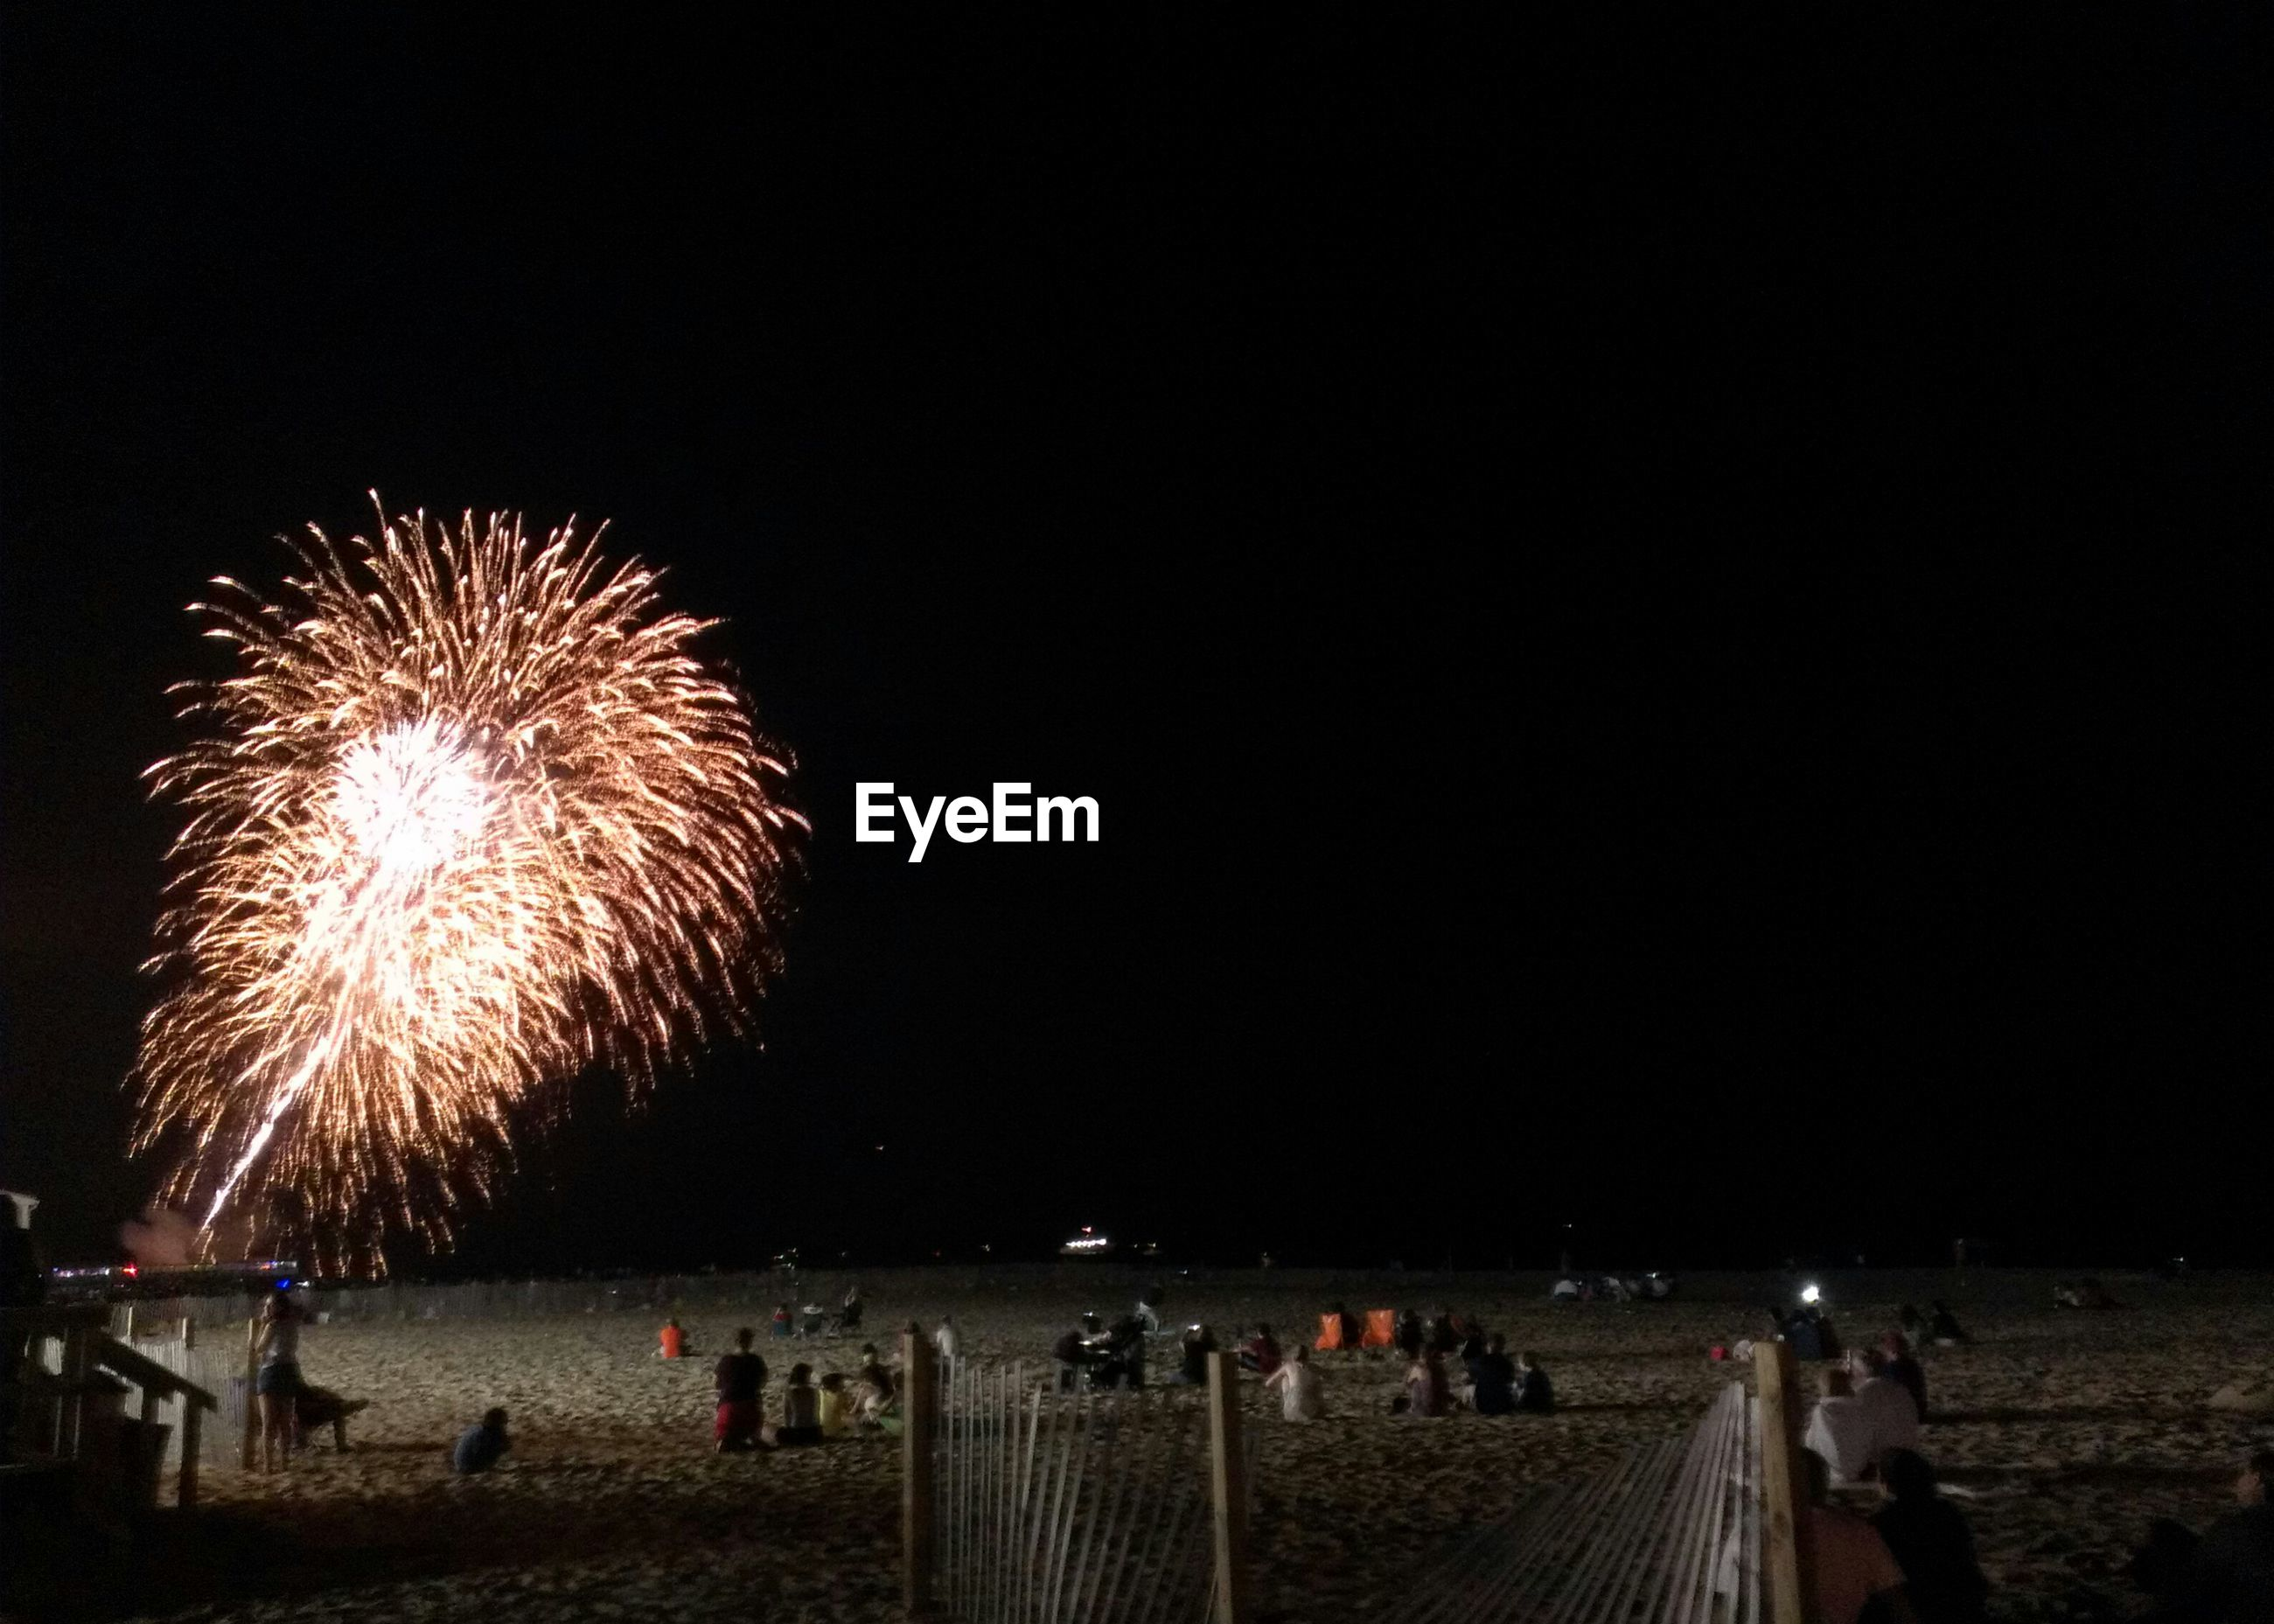 Fire crackers on beach at night